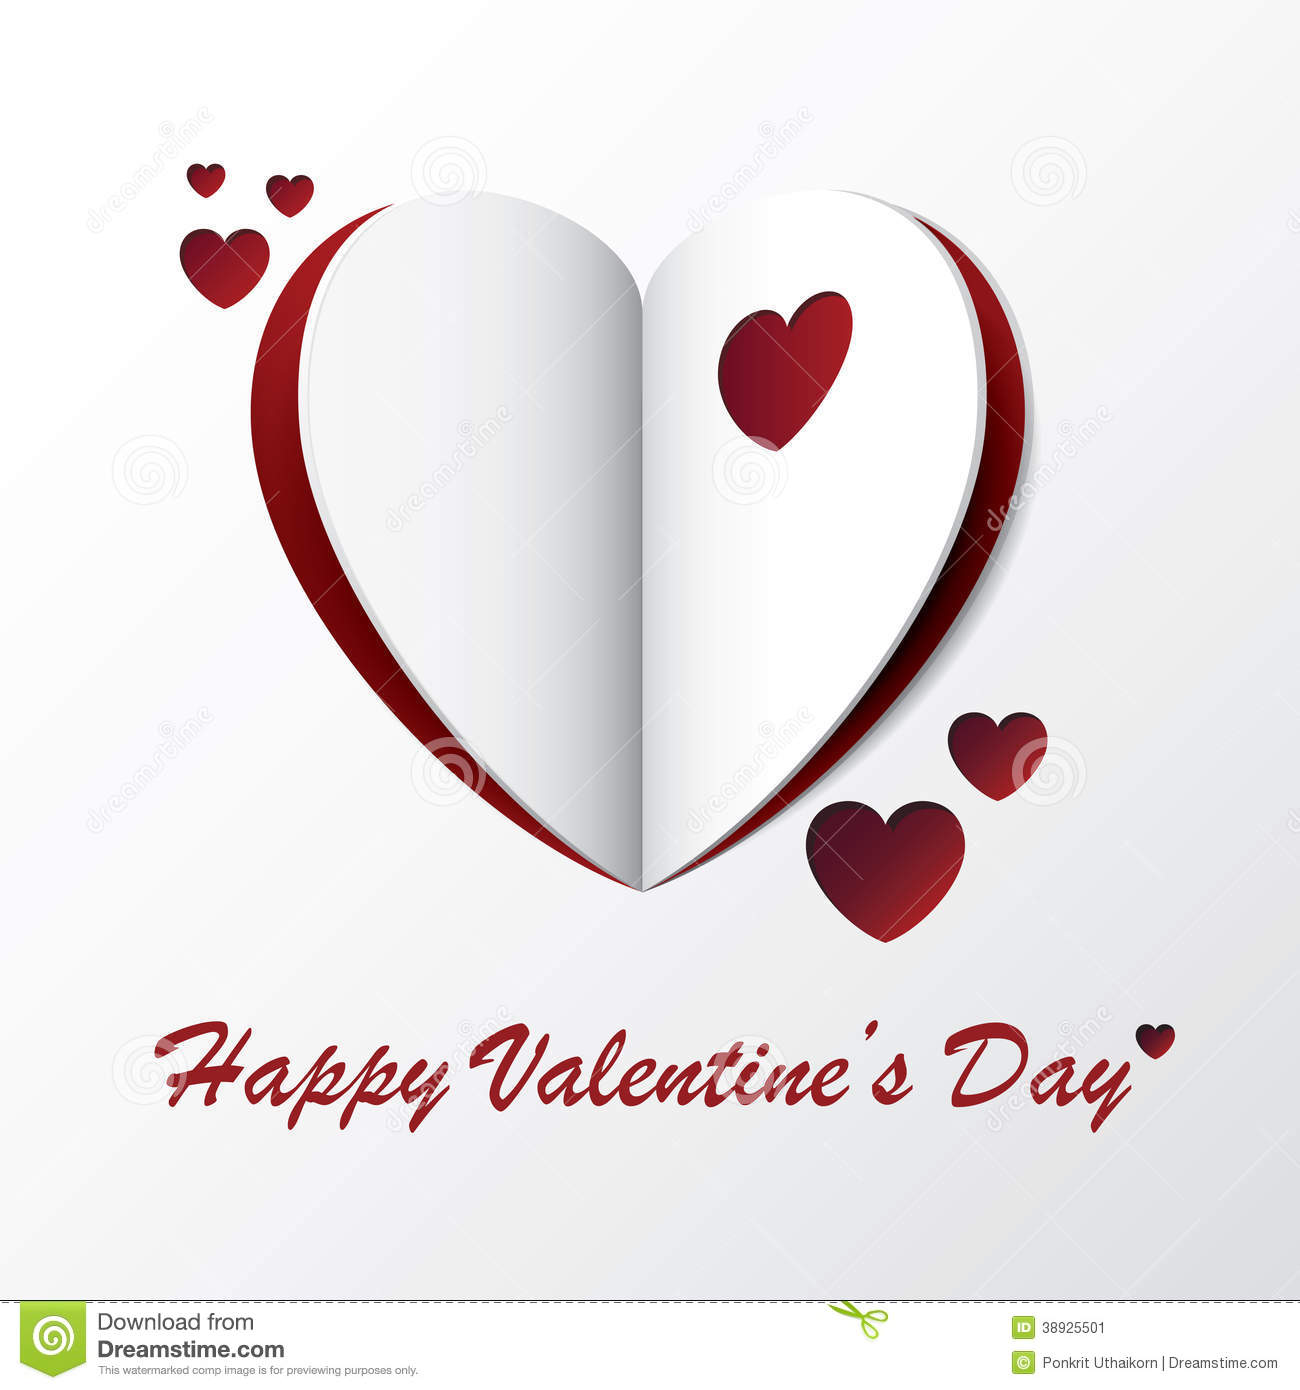 Heart valentine greeting card design stock vector image for Designs for valentine cards